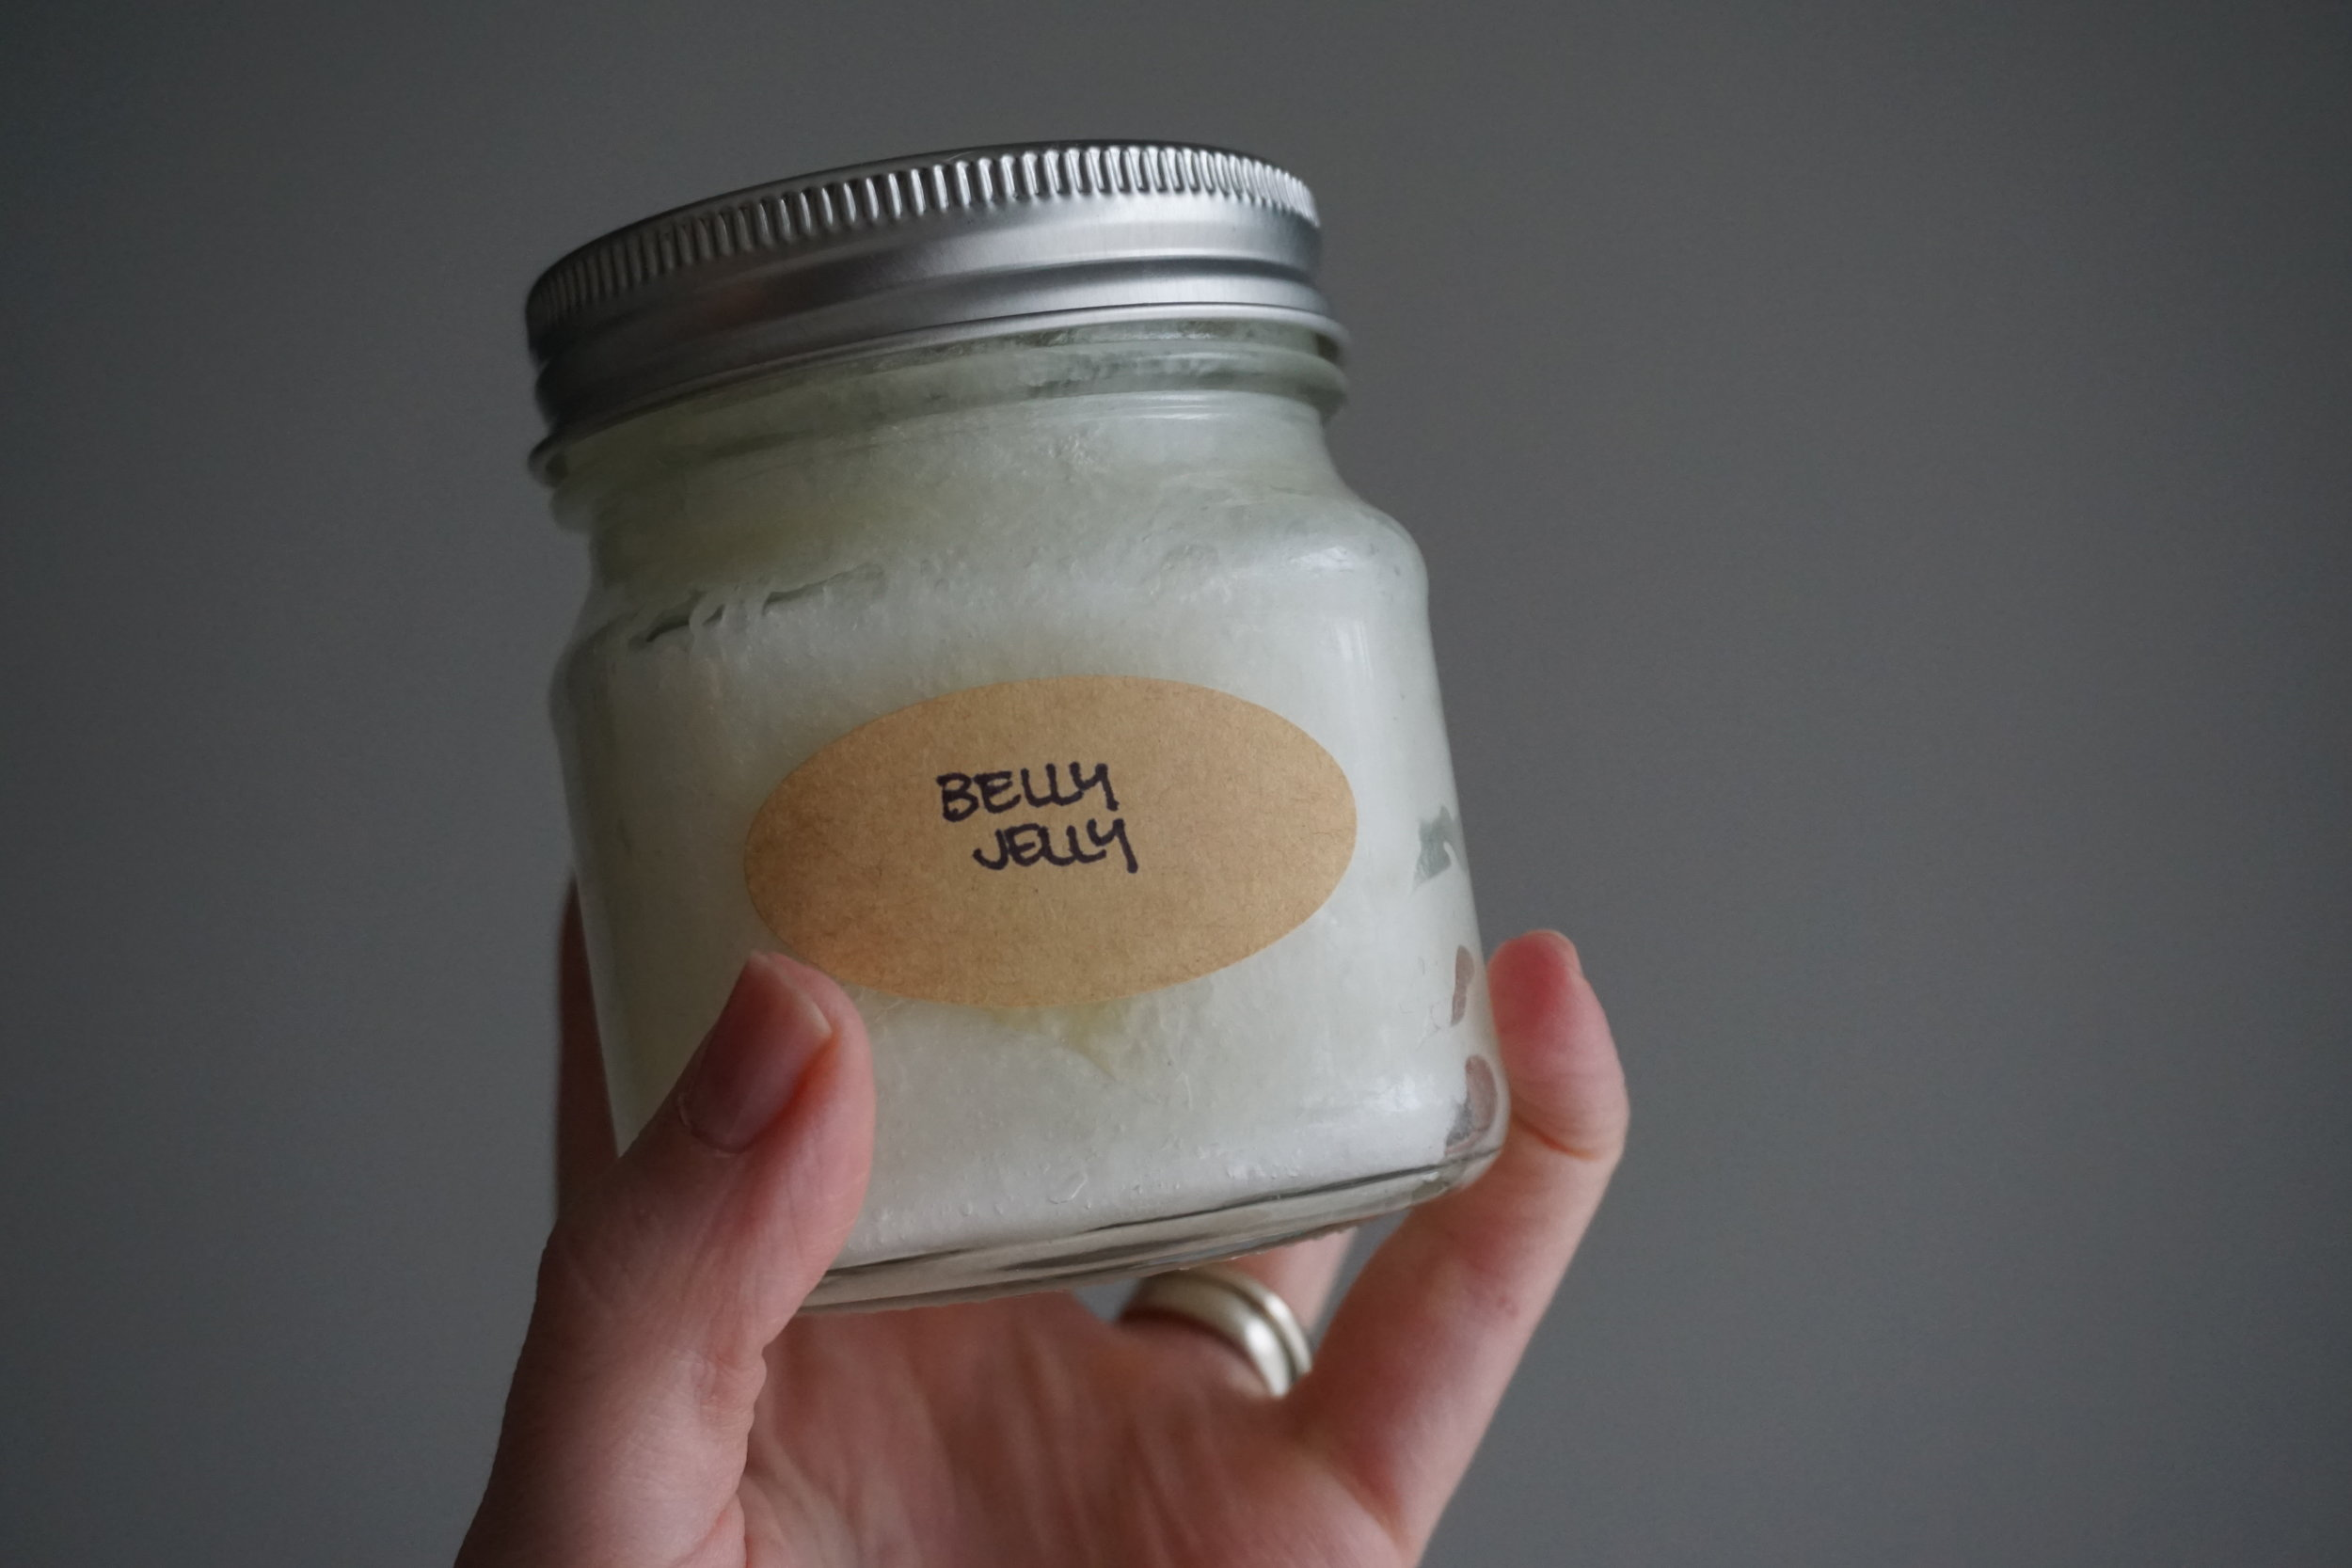 DIY skin-firming belly jelly two ways (one for C-section mamas!) - Postpartum lotion I use and love